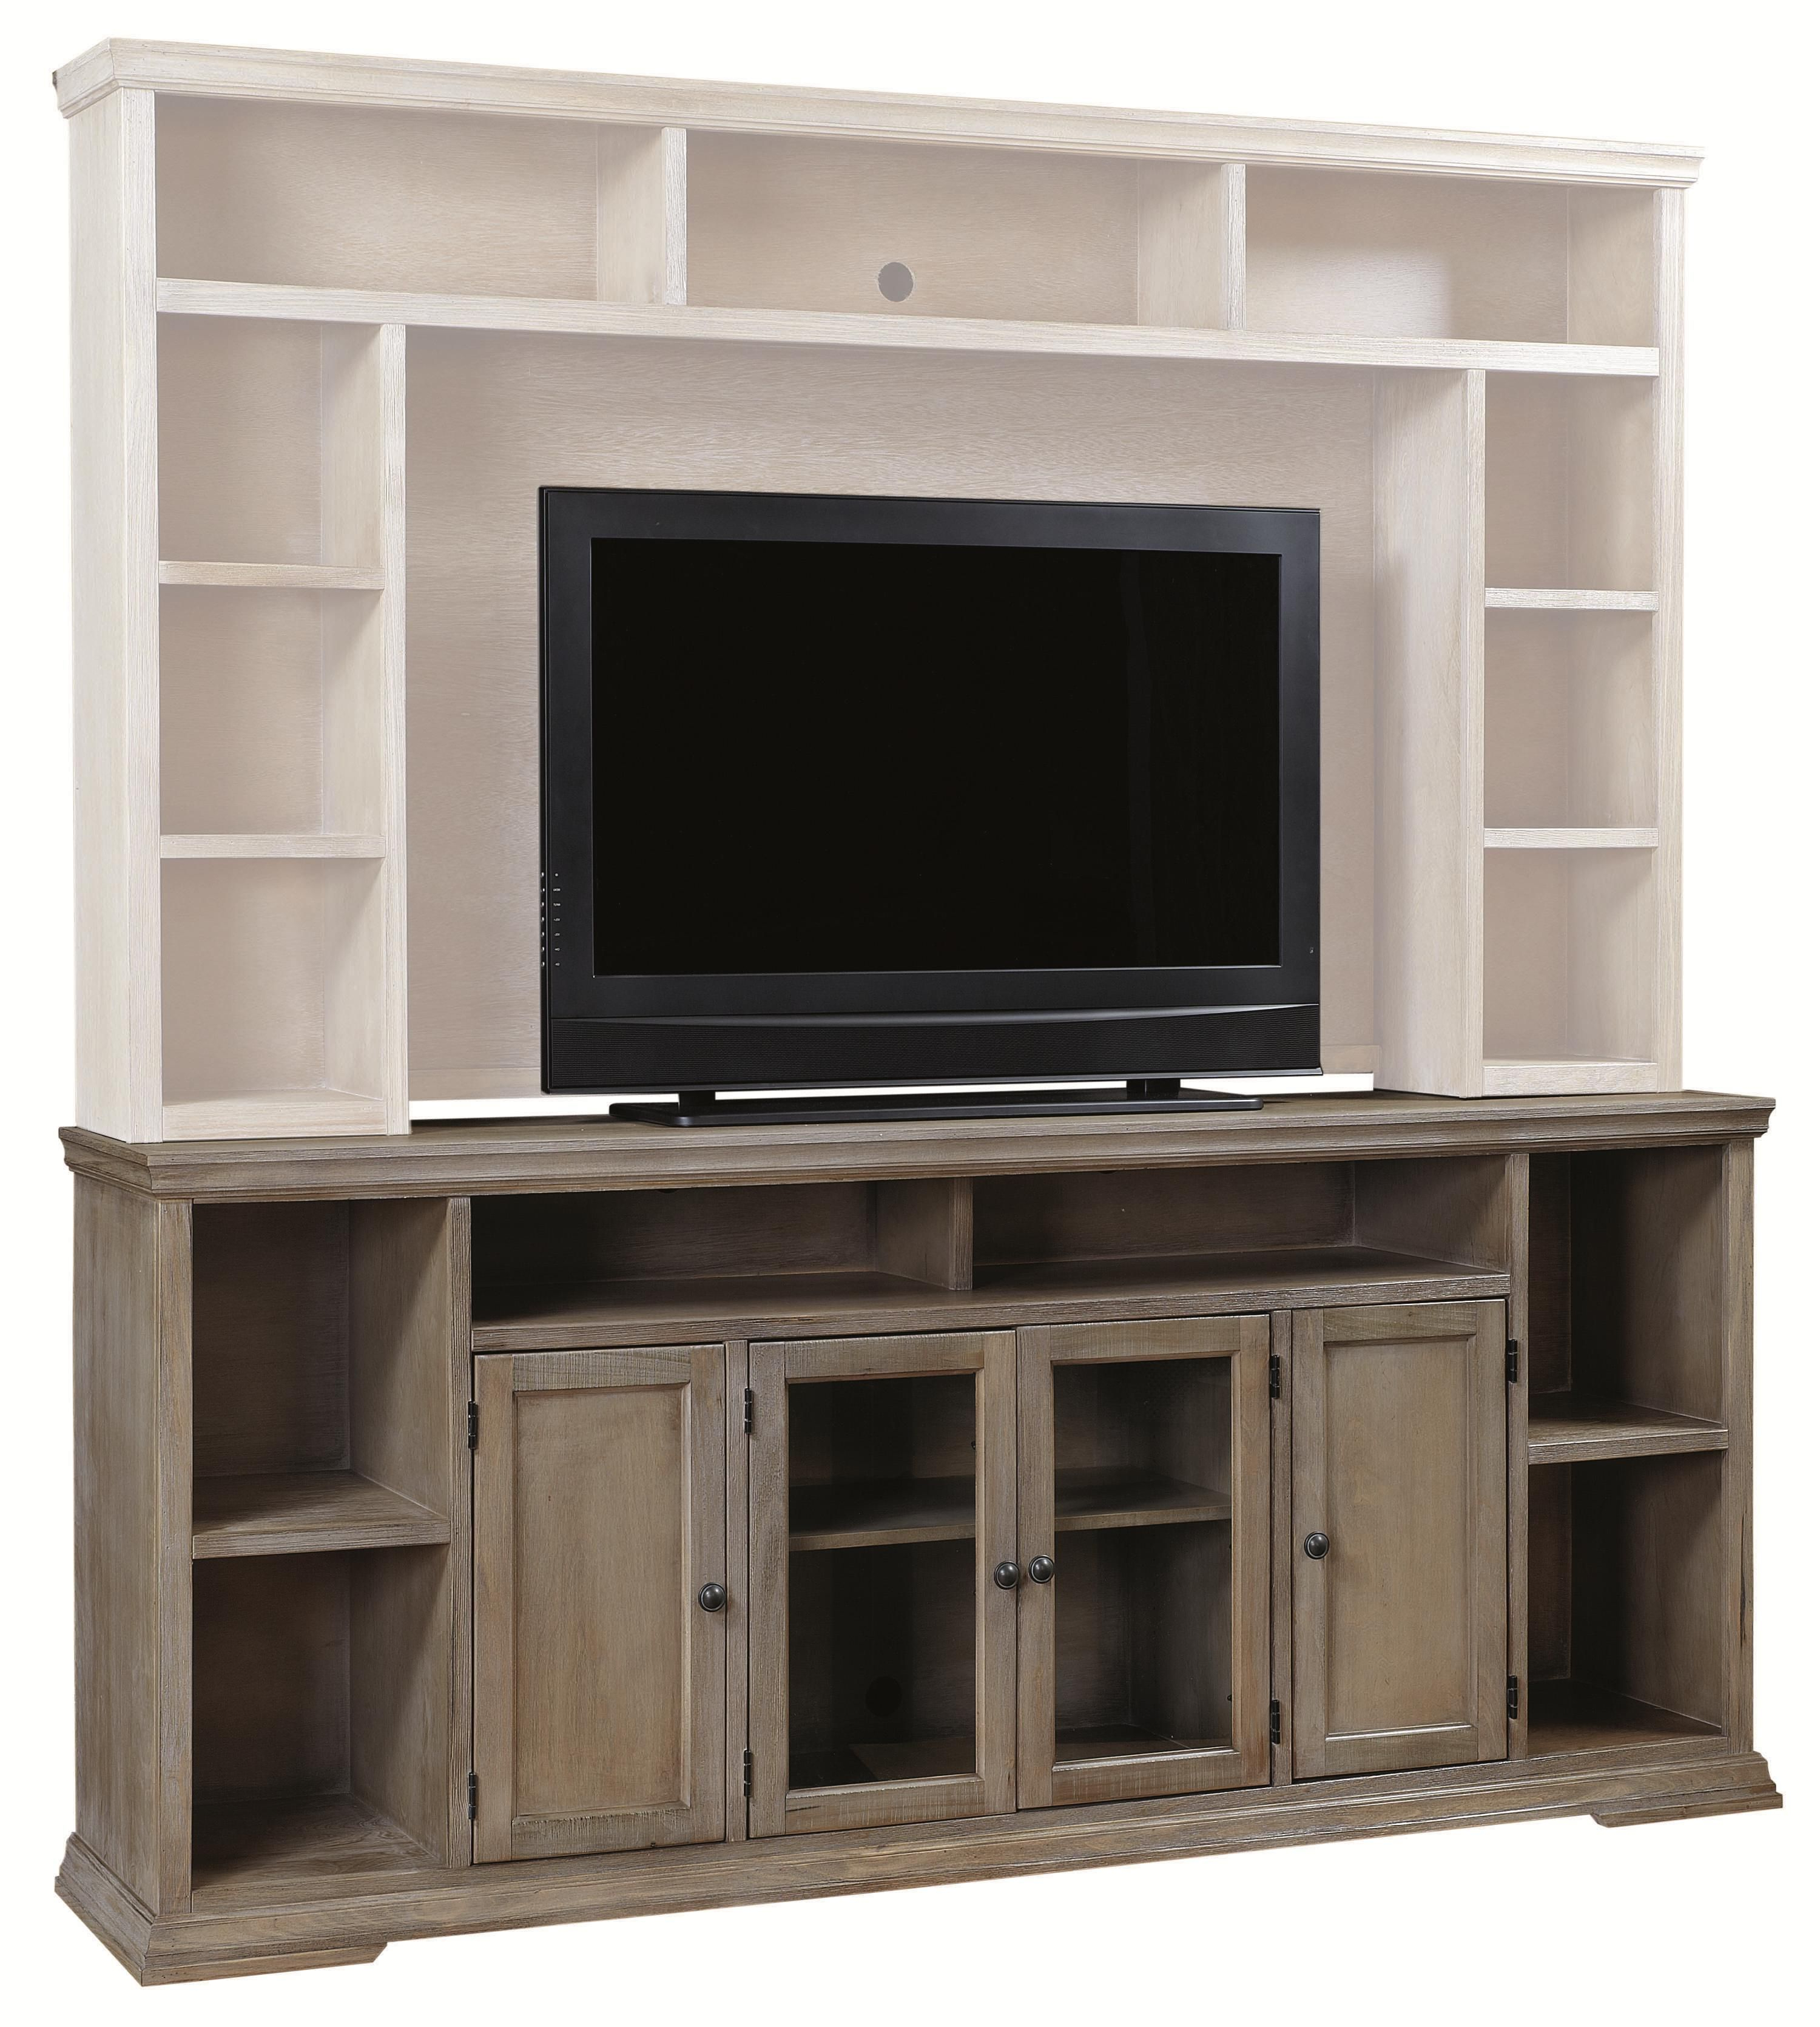 Canyon Creek 84 Inch Tv Console With 4 Doors And Open Shelf Storage In Fashionable Canyon 54 Inch Tv Stands (View 7 of 20)